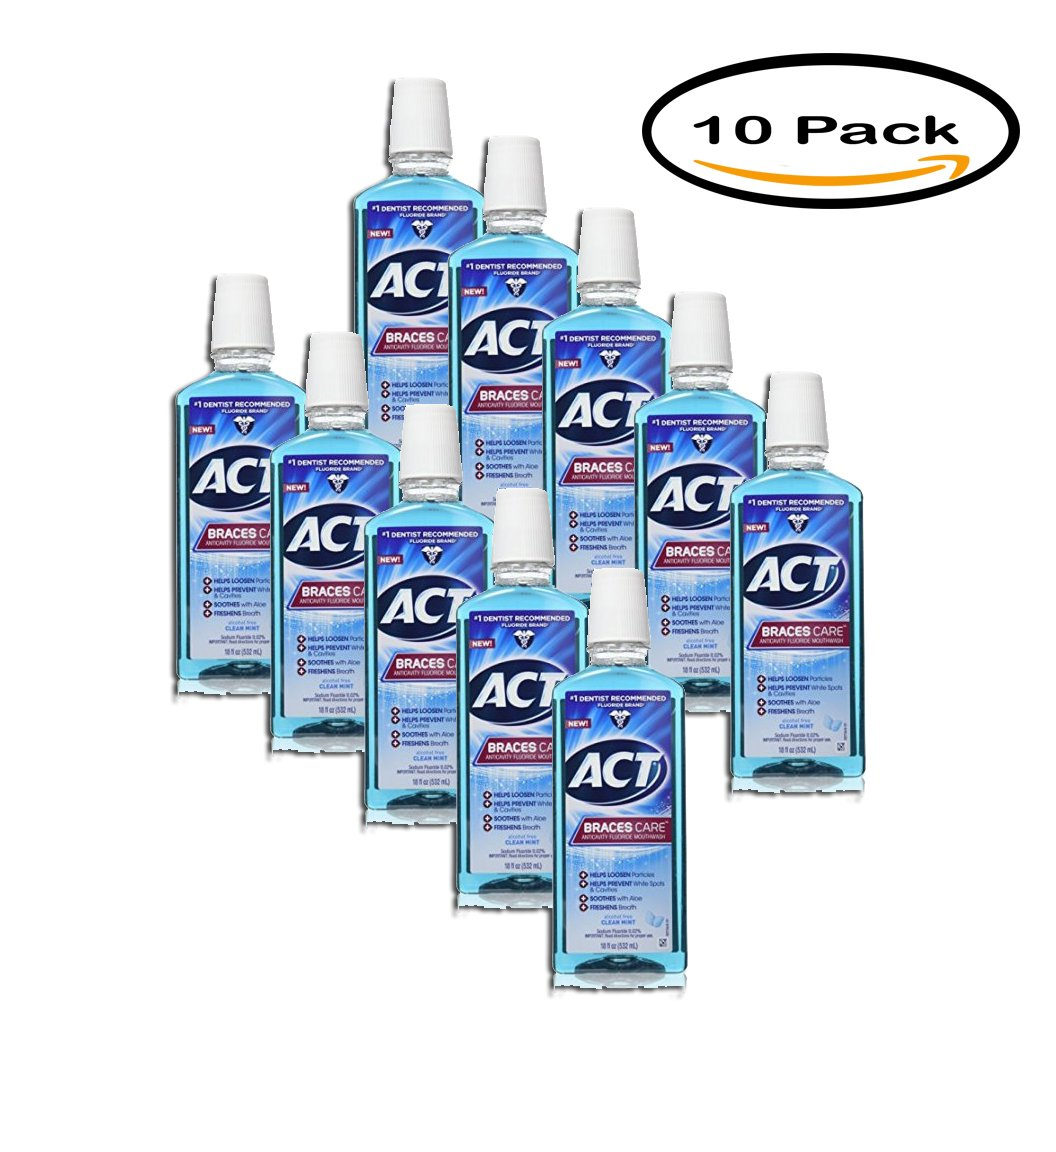 PACK OF 10 - ACT Braces Care Anticavity Fluoride Mouthwash, 18 Fl Oz